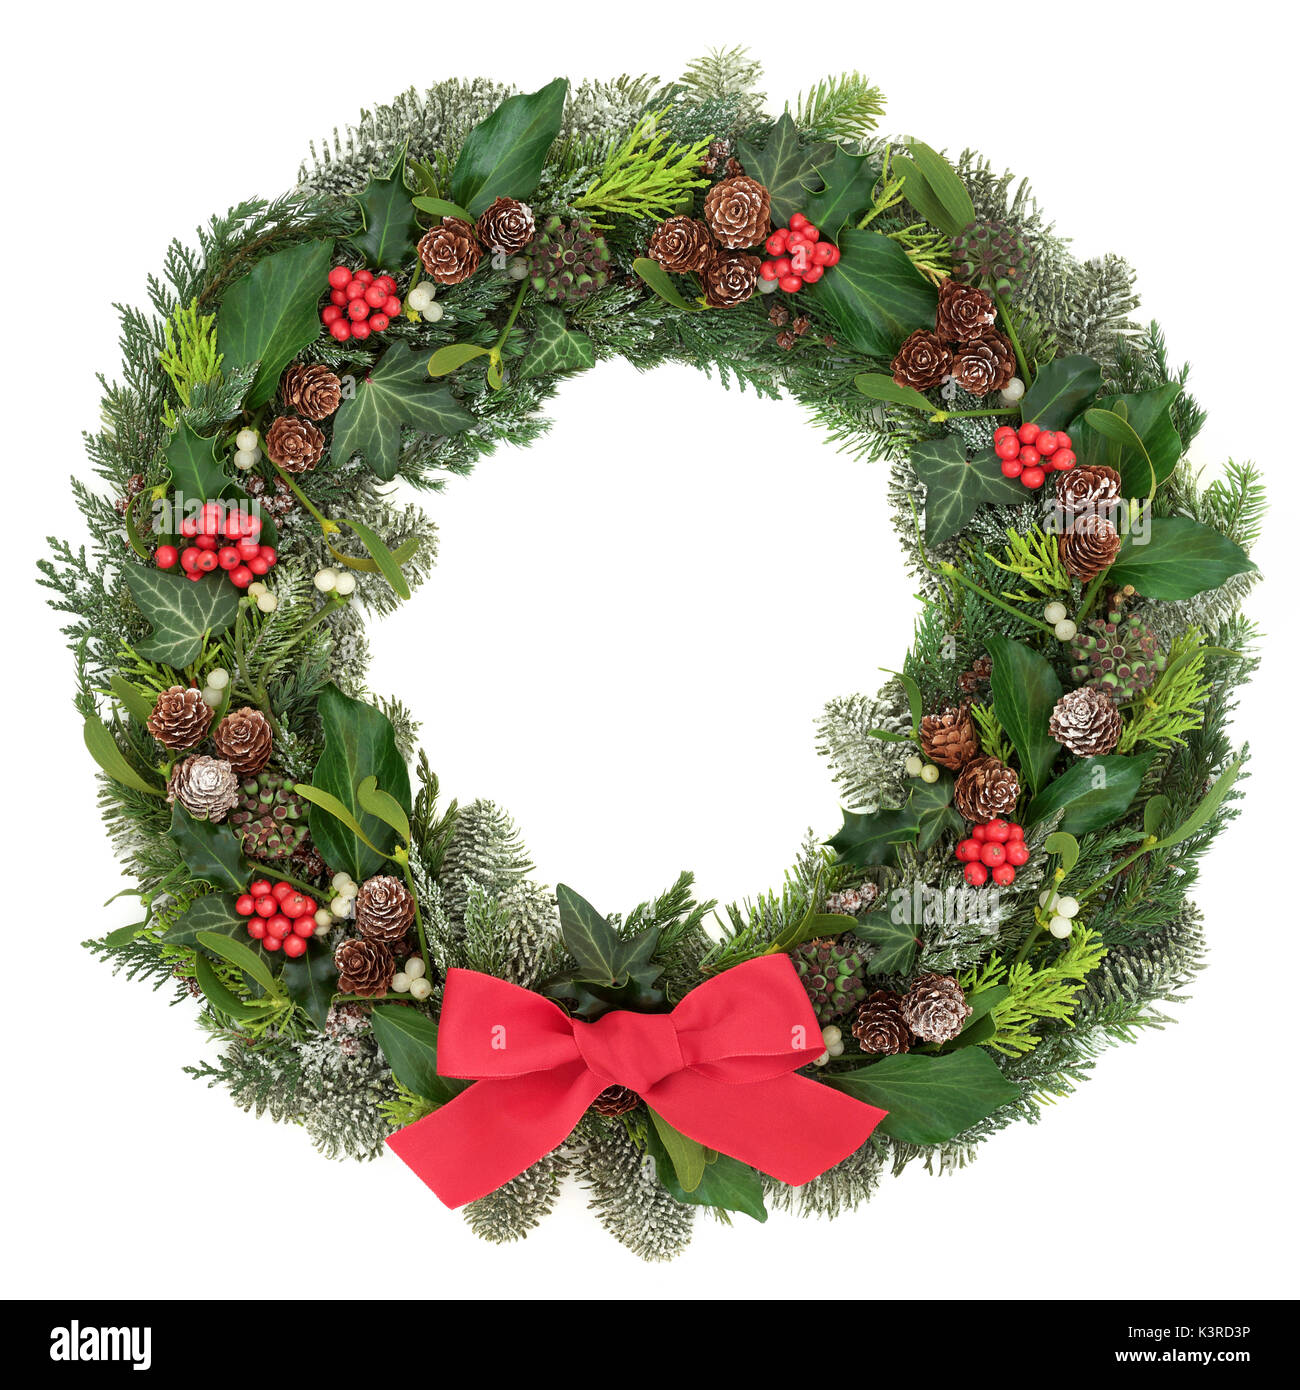 Christmas Wreath Decoration With A Red Bow Holly Mistletoe Snow Covered Juniper Fir